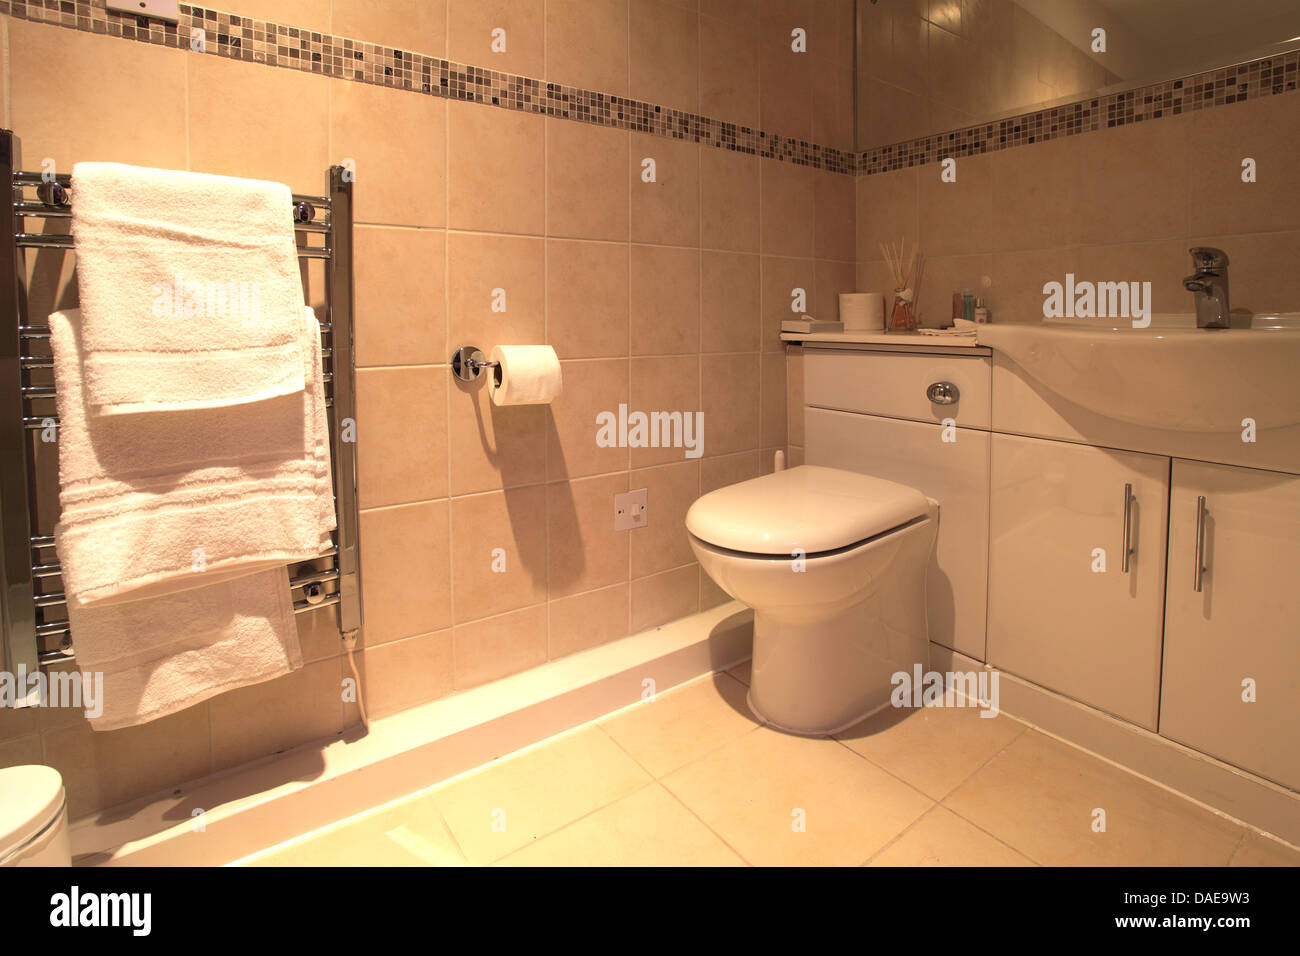 Interior of a hotel bathroom with ceiling lights shower cubicle interior of a hotel bathroom with ceiling lights shower cubicle toilet and furnishings mozeypictures Choice Image